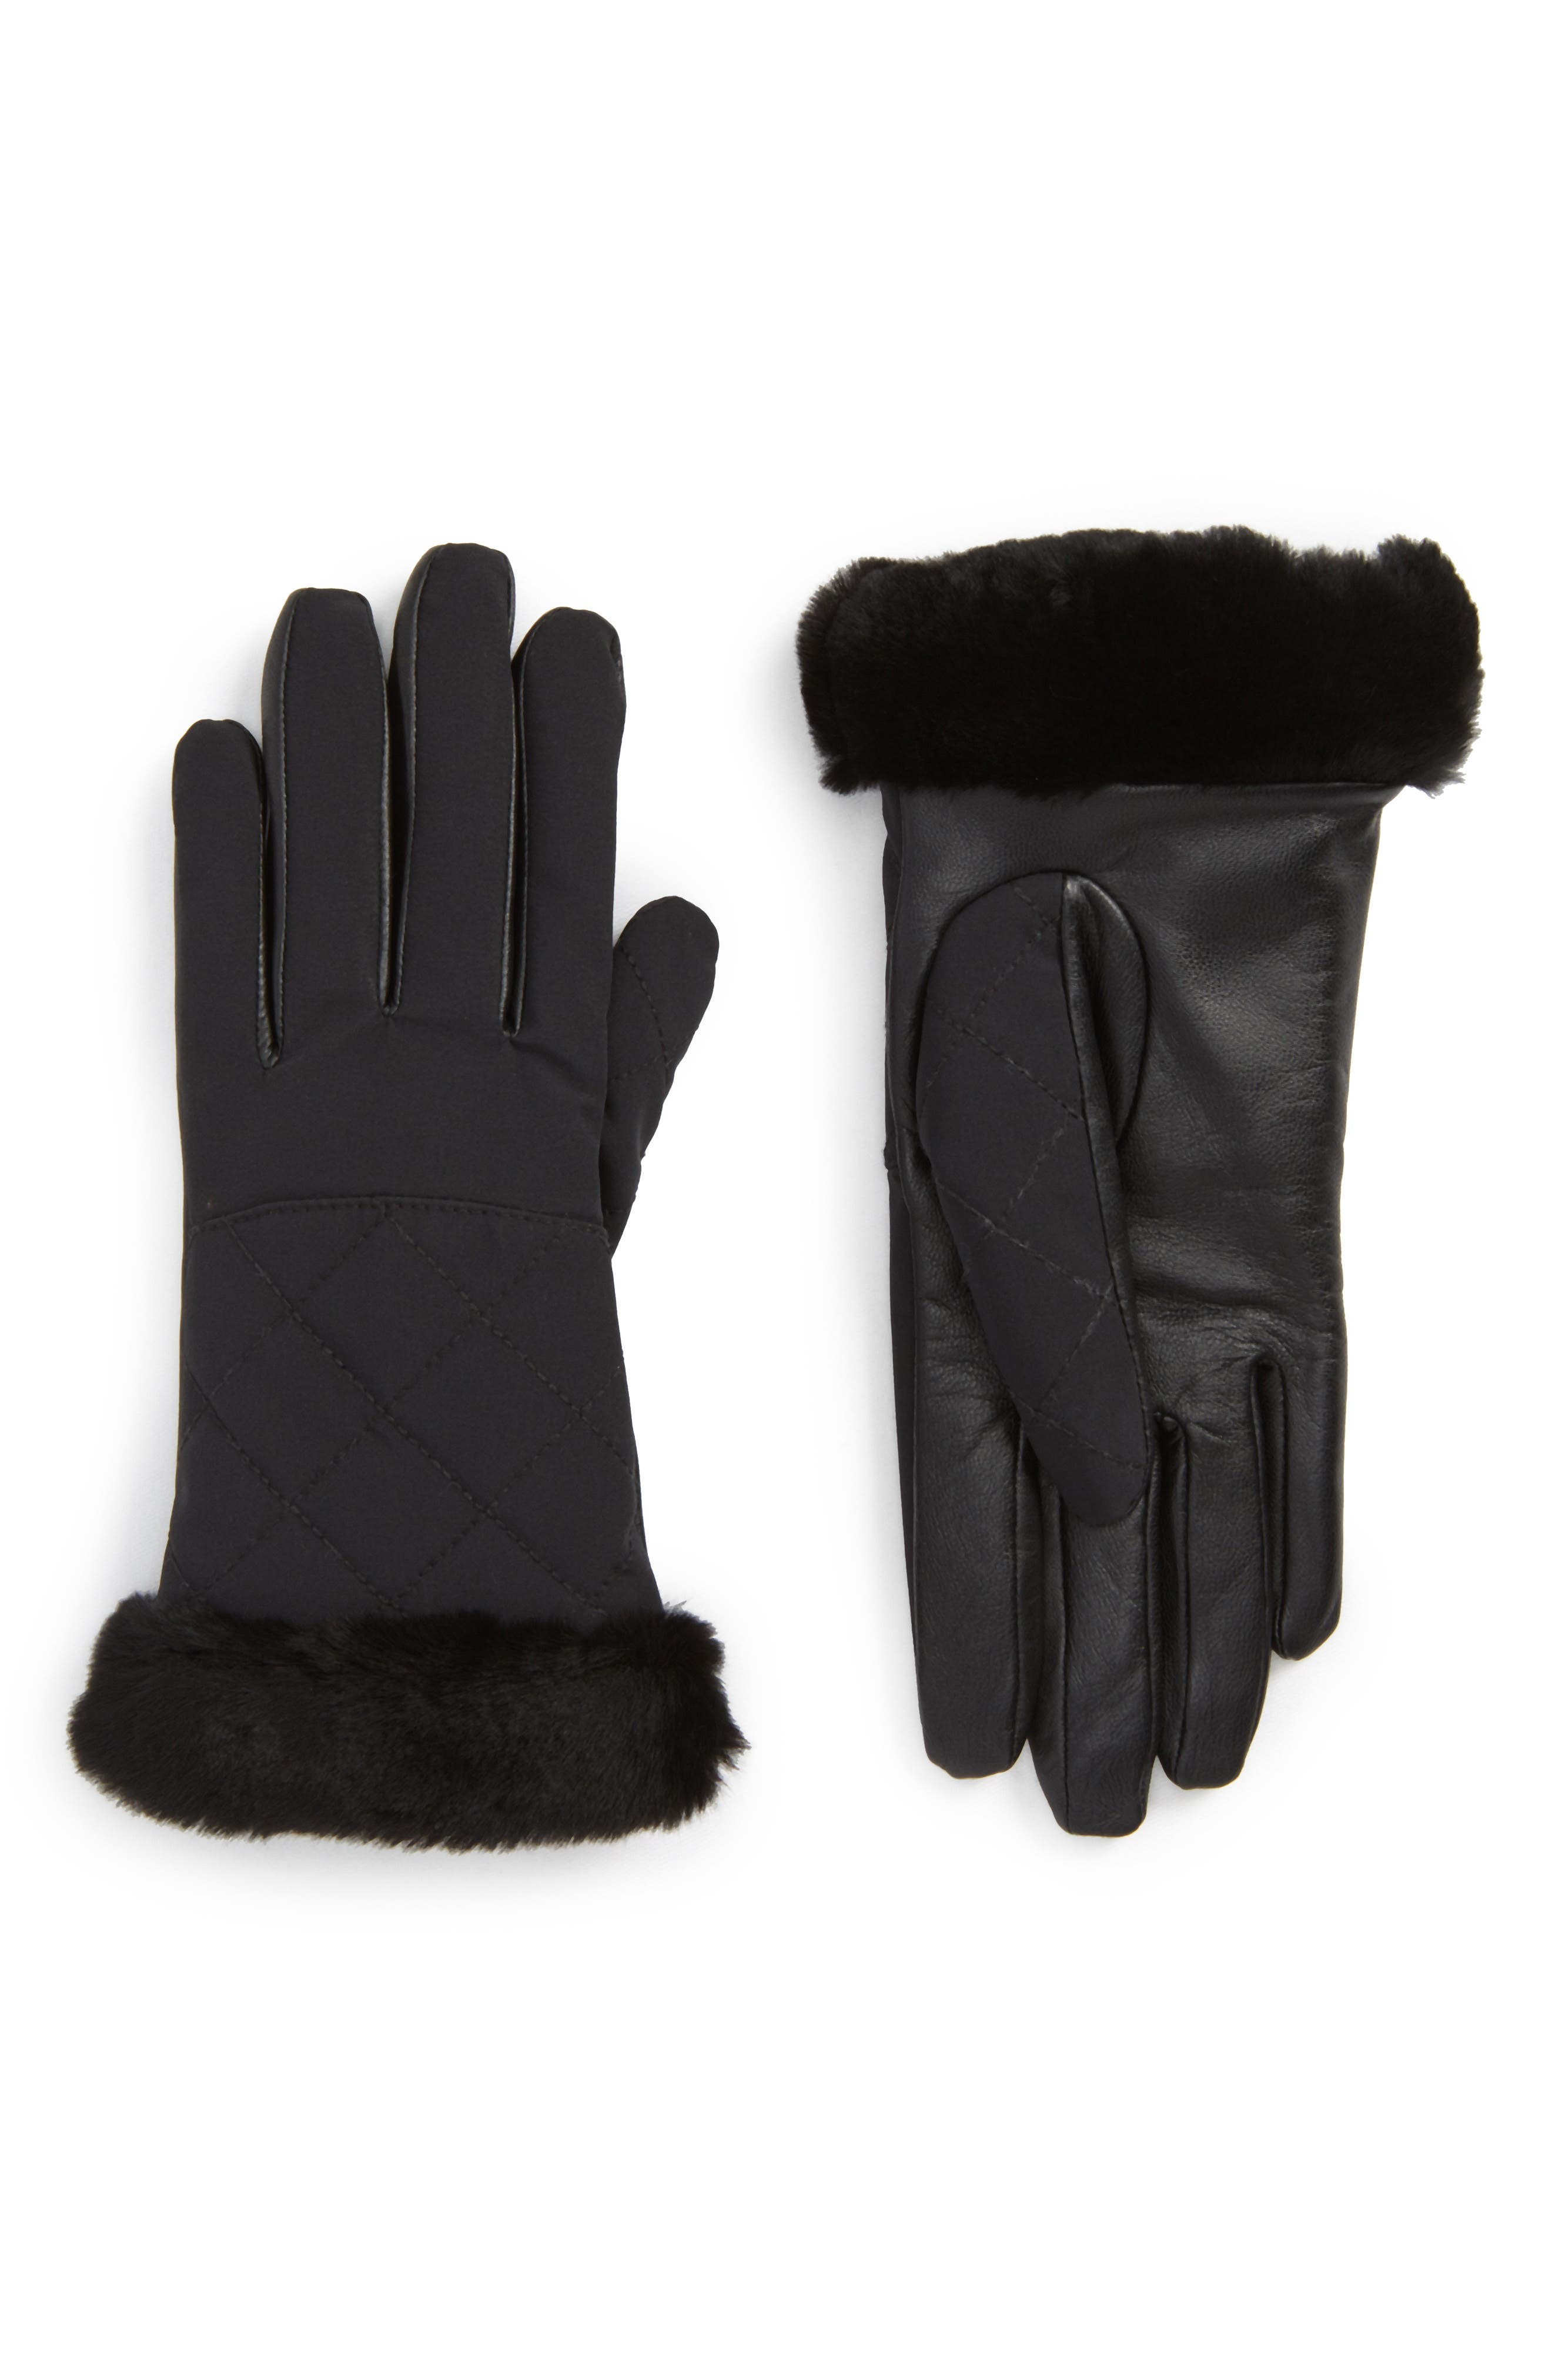 UGG<sup>®</sup> Water Resistant Touchscreen Quilted Nylon, Leather & Genuine Shearling Gloves,                         Main,                         color, 001